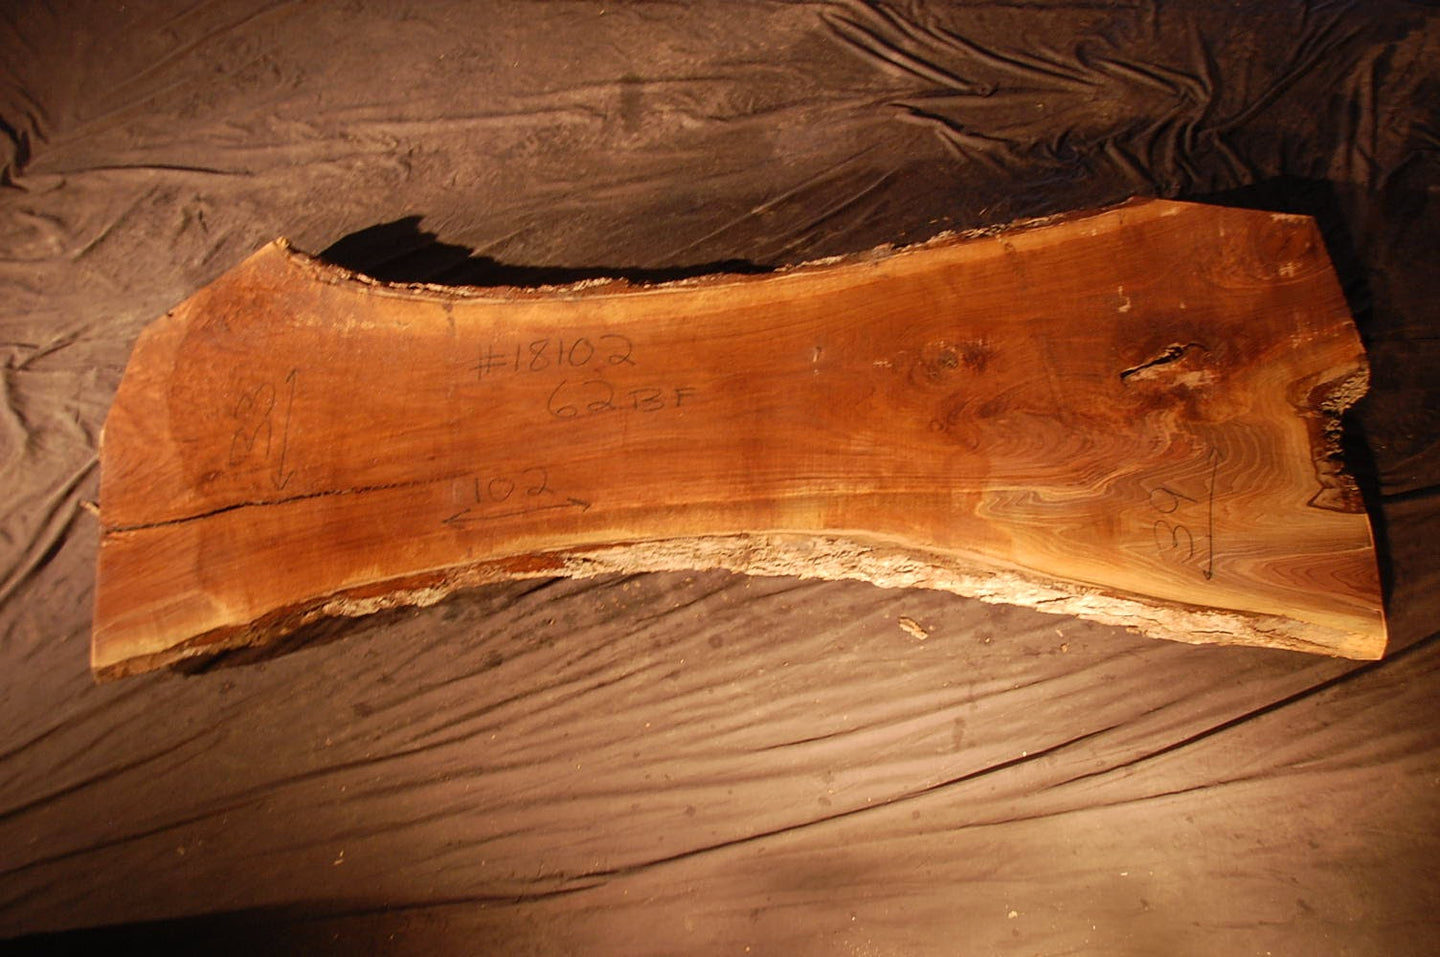 Walnut Slab #18102